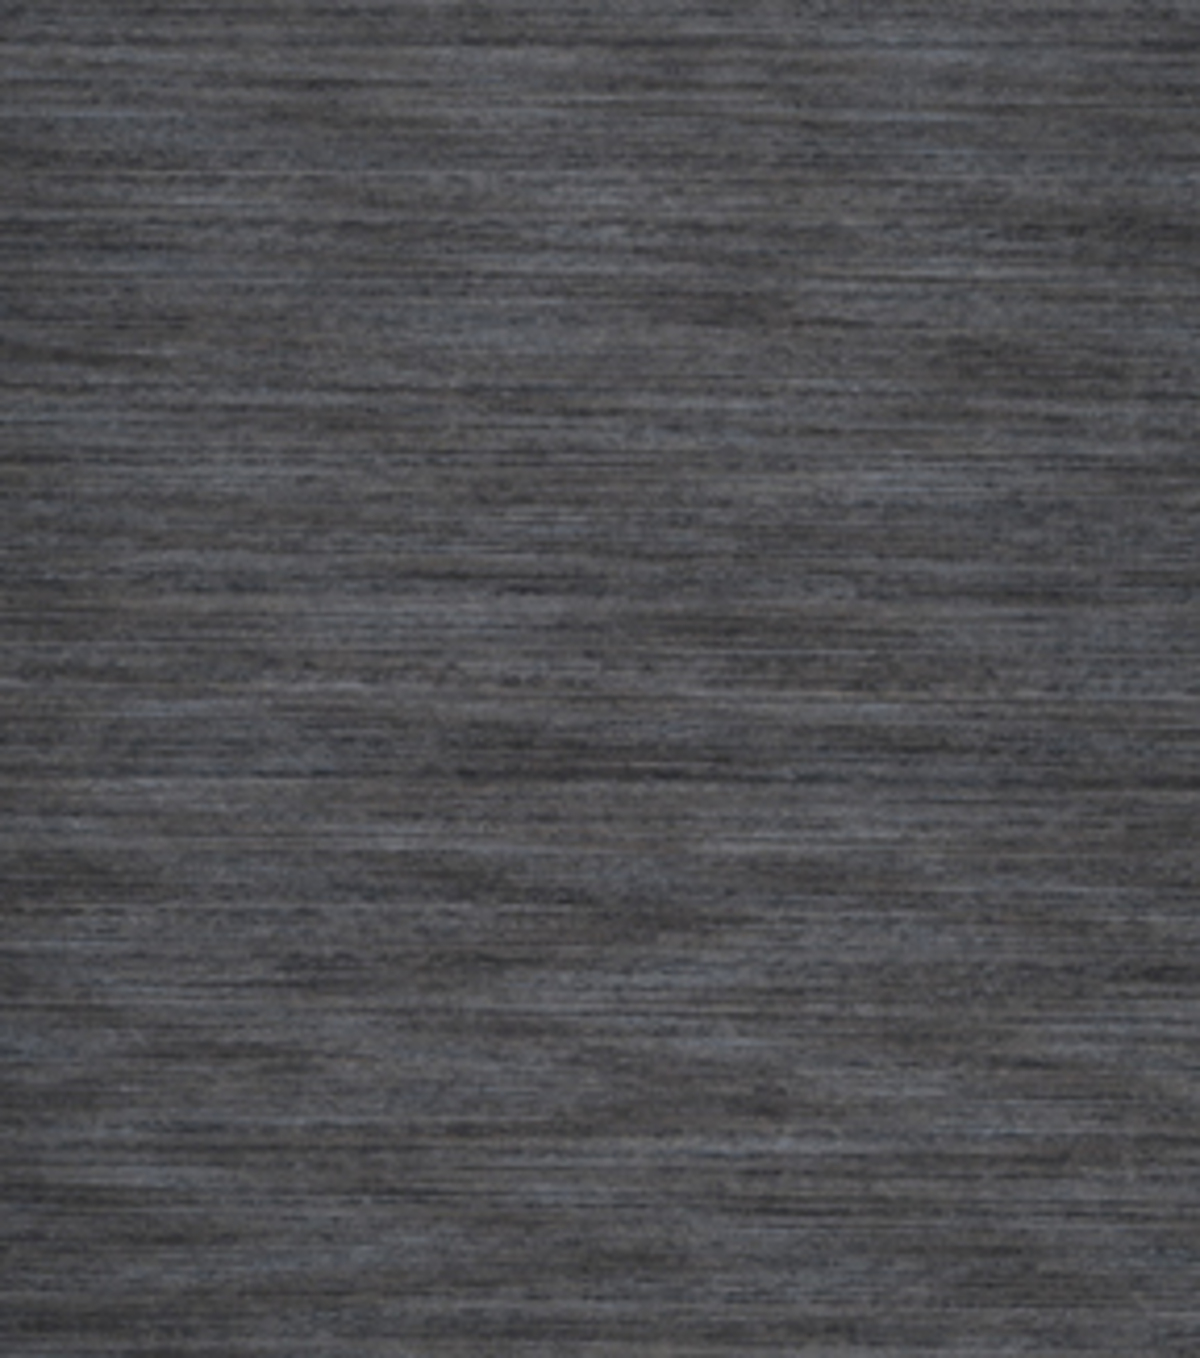 Home Decor 8\u0022x8\u0022 Fabric Swatch--Signature Series Shelburne-Noir